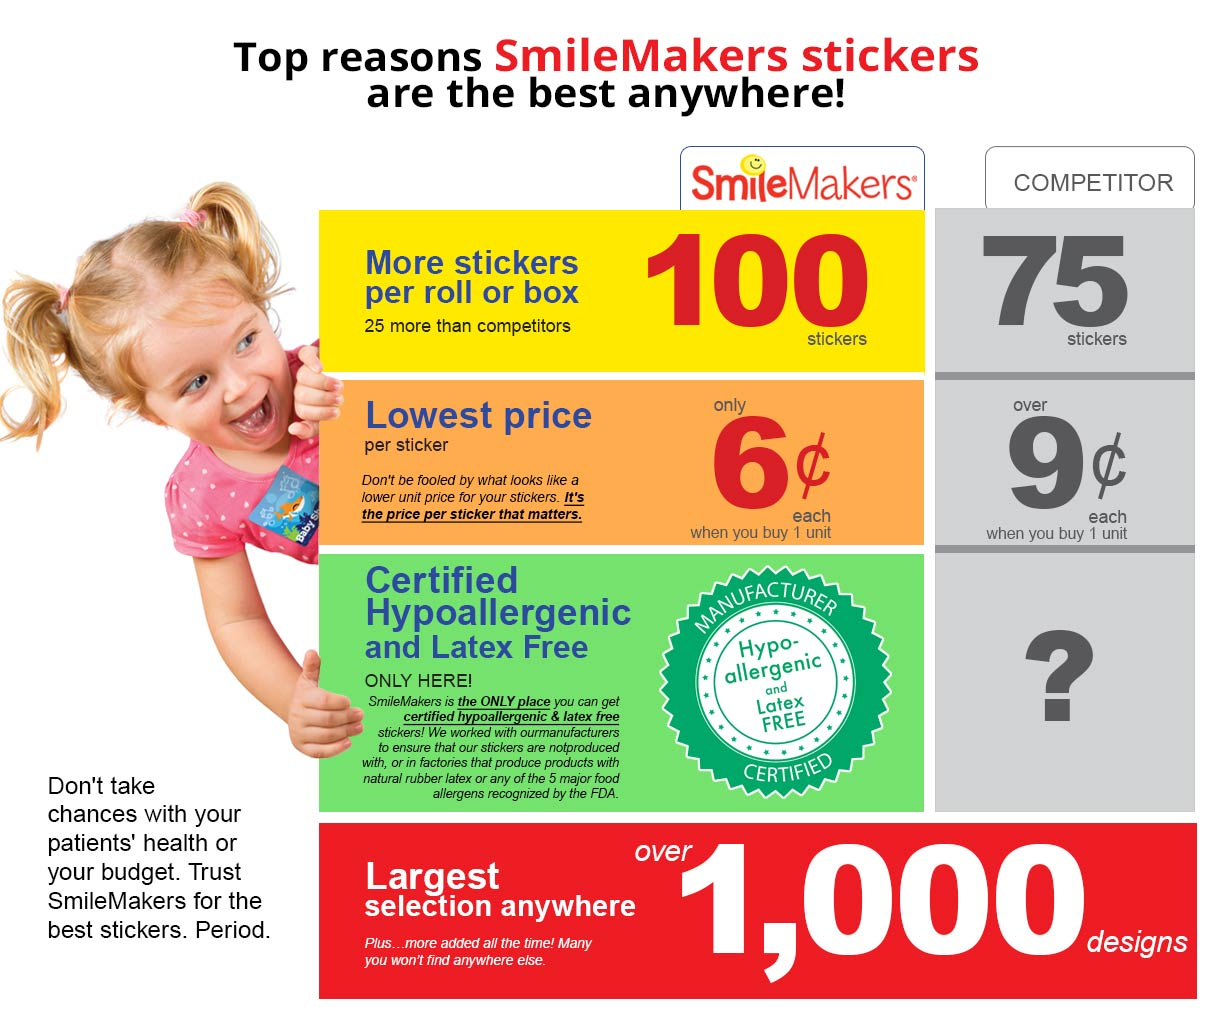 Top Reasons Why SmileMakers Stickers are the best anywhere!